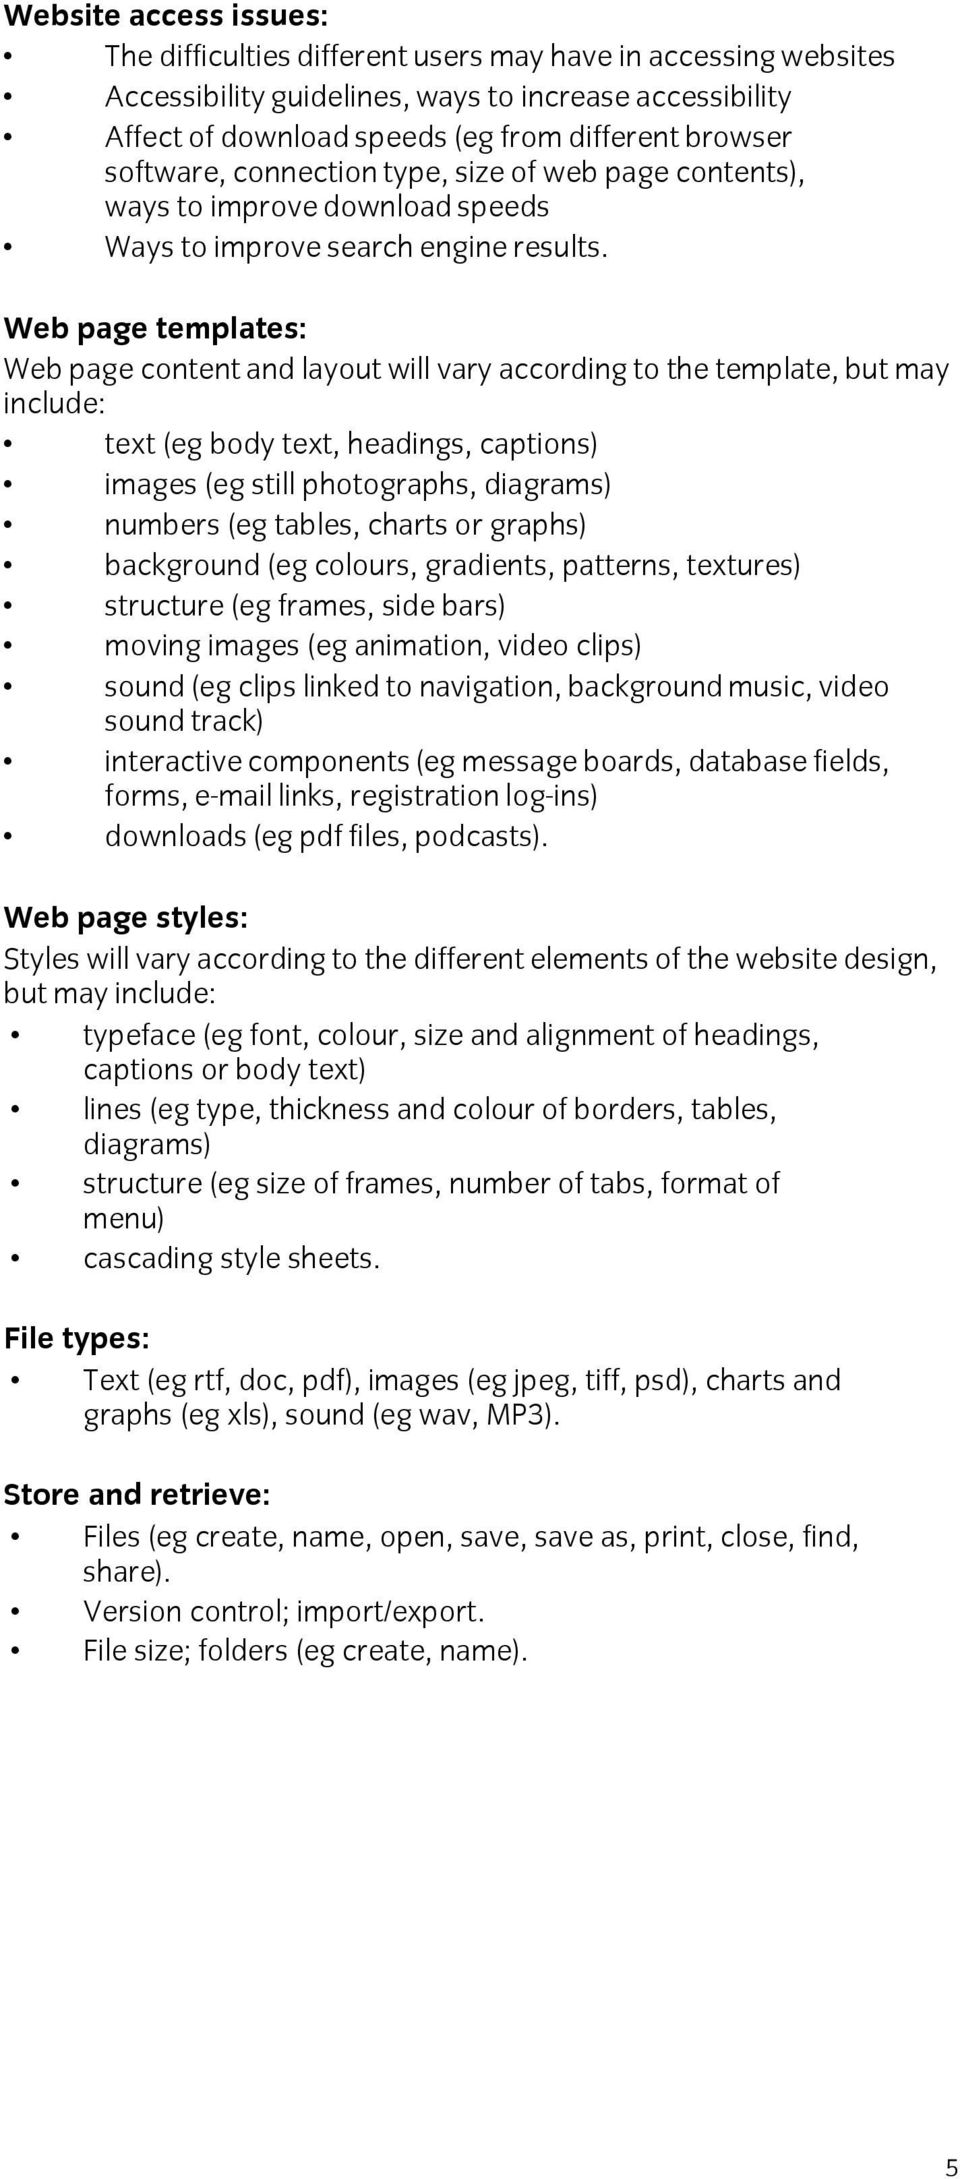 Web page templates: Web page content and layout will vary according to the template, but may include: text (eg body text, headings, captions) images (eg still photographs, diagrams) numbers (eg